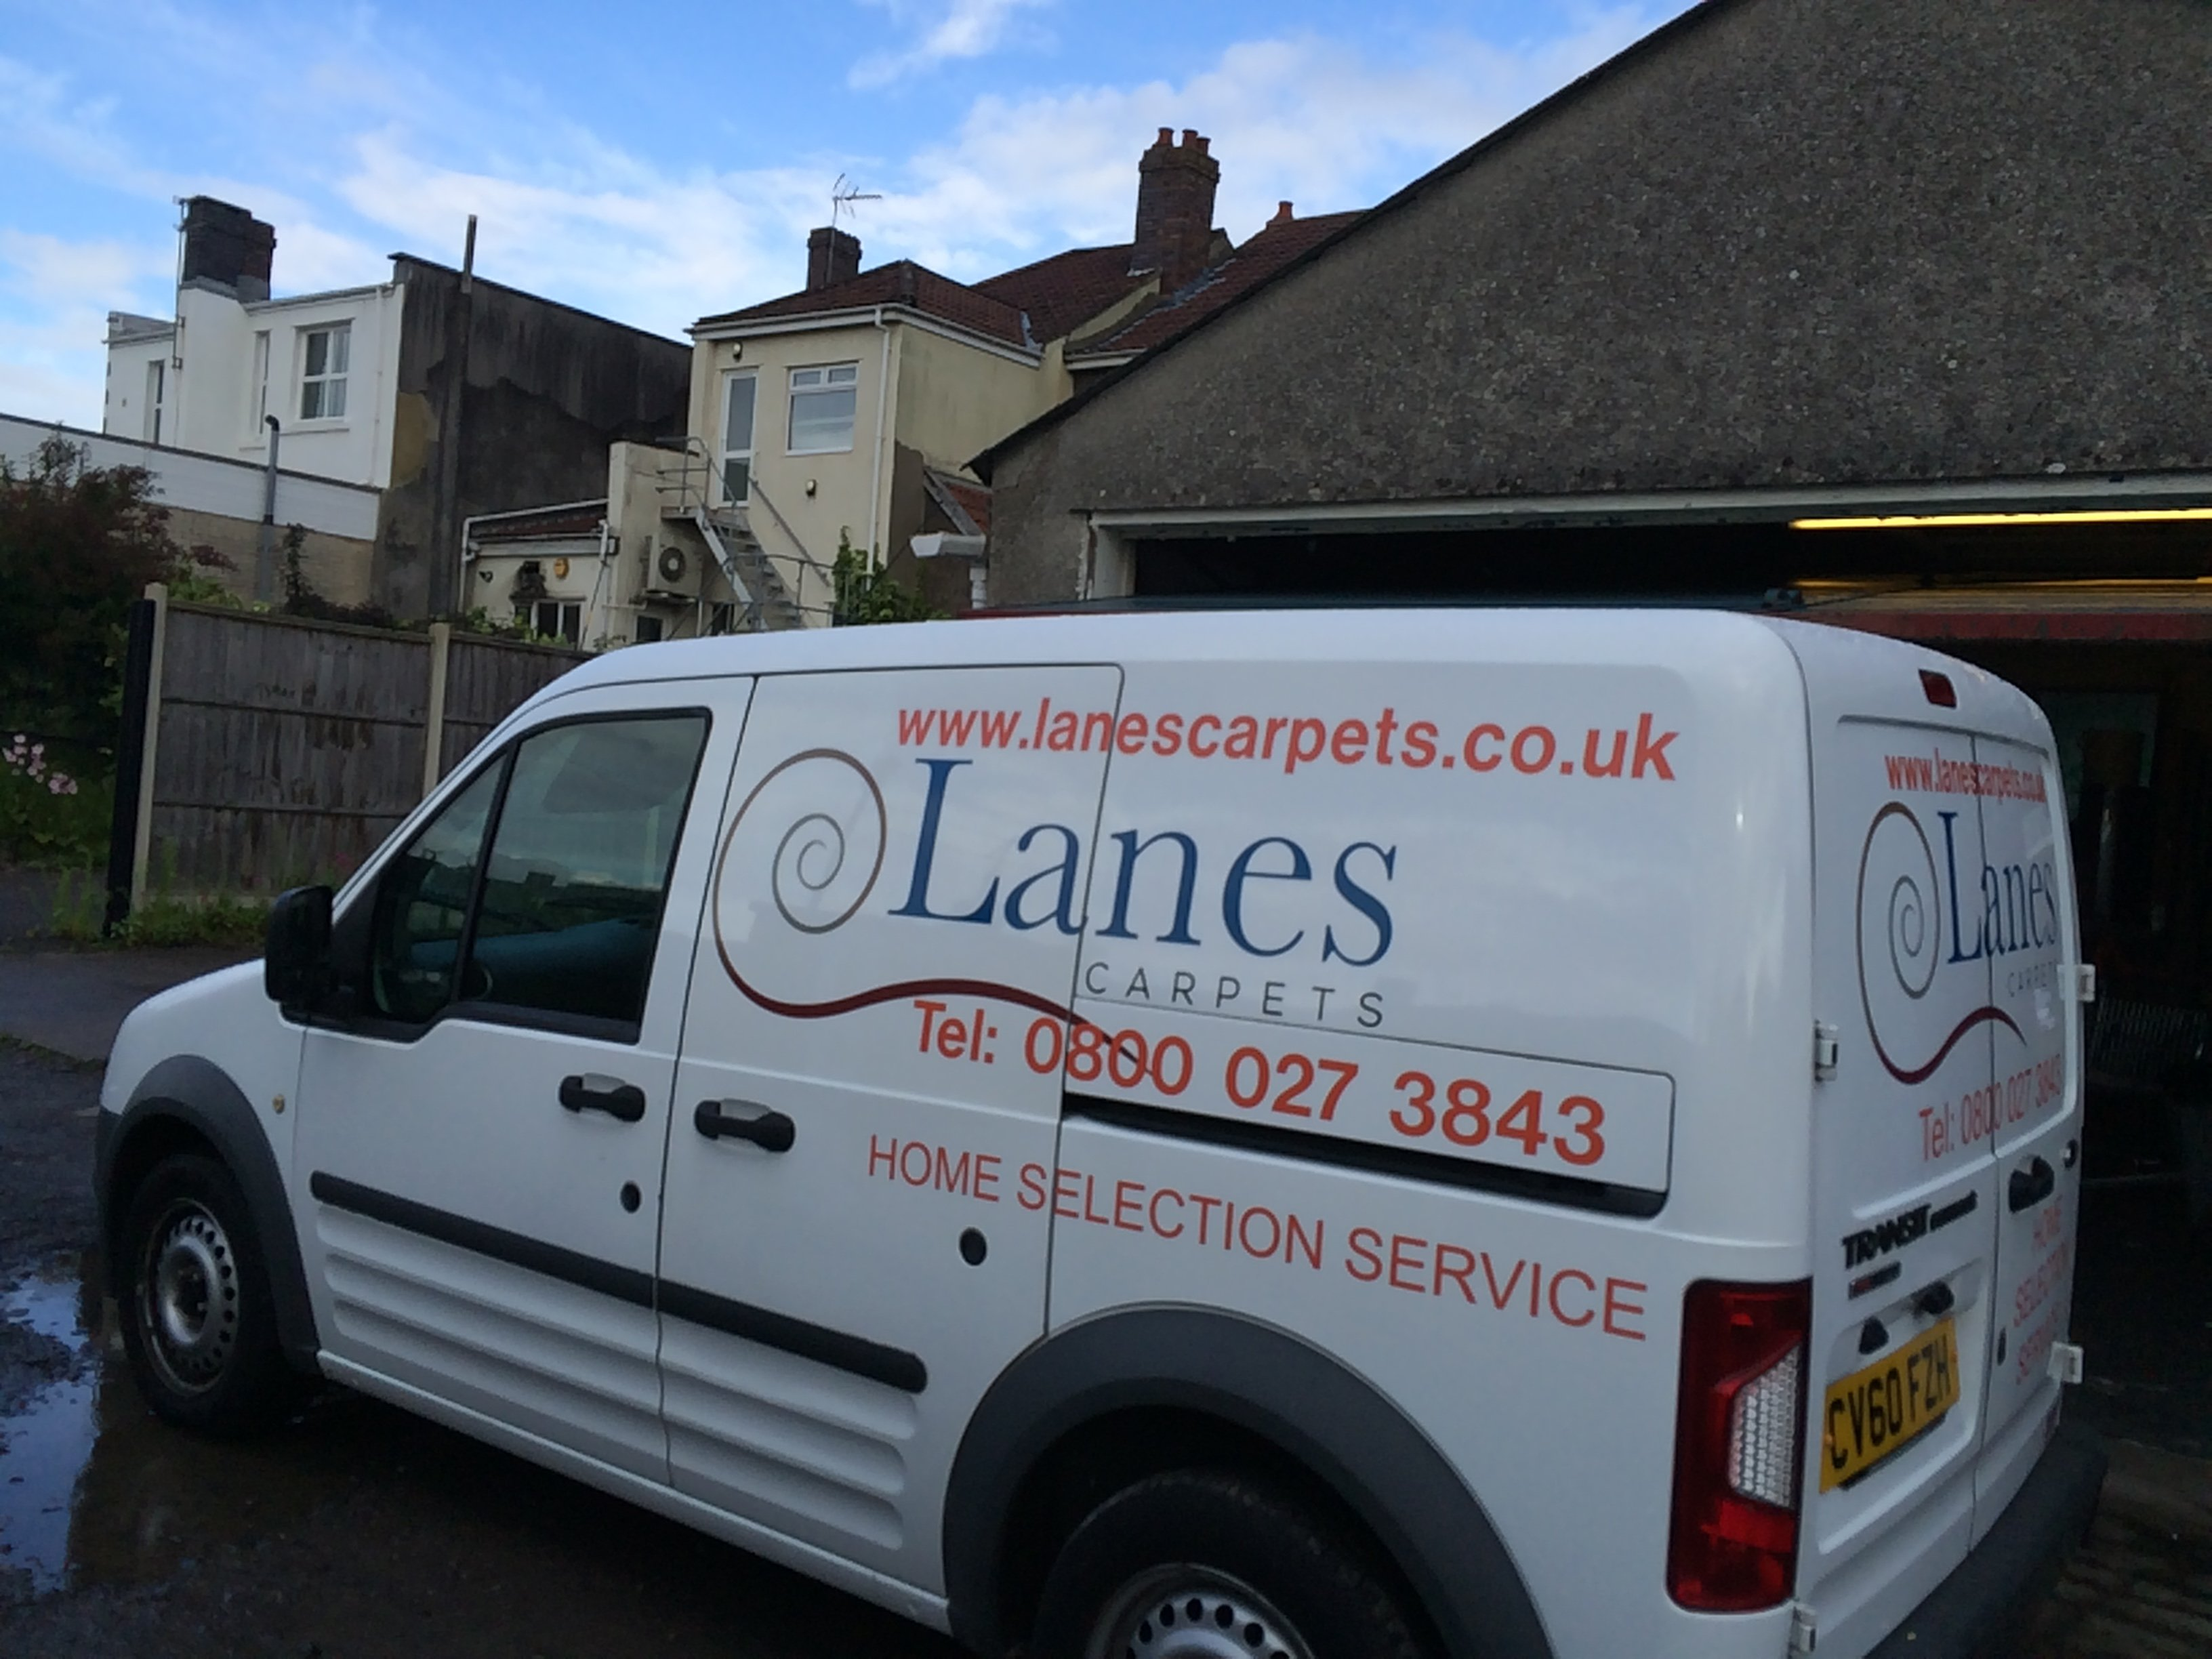 Lanes-vehicle graphics